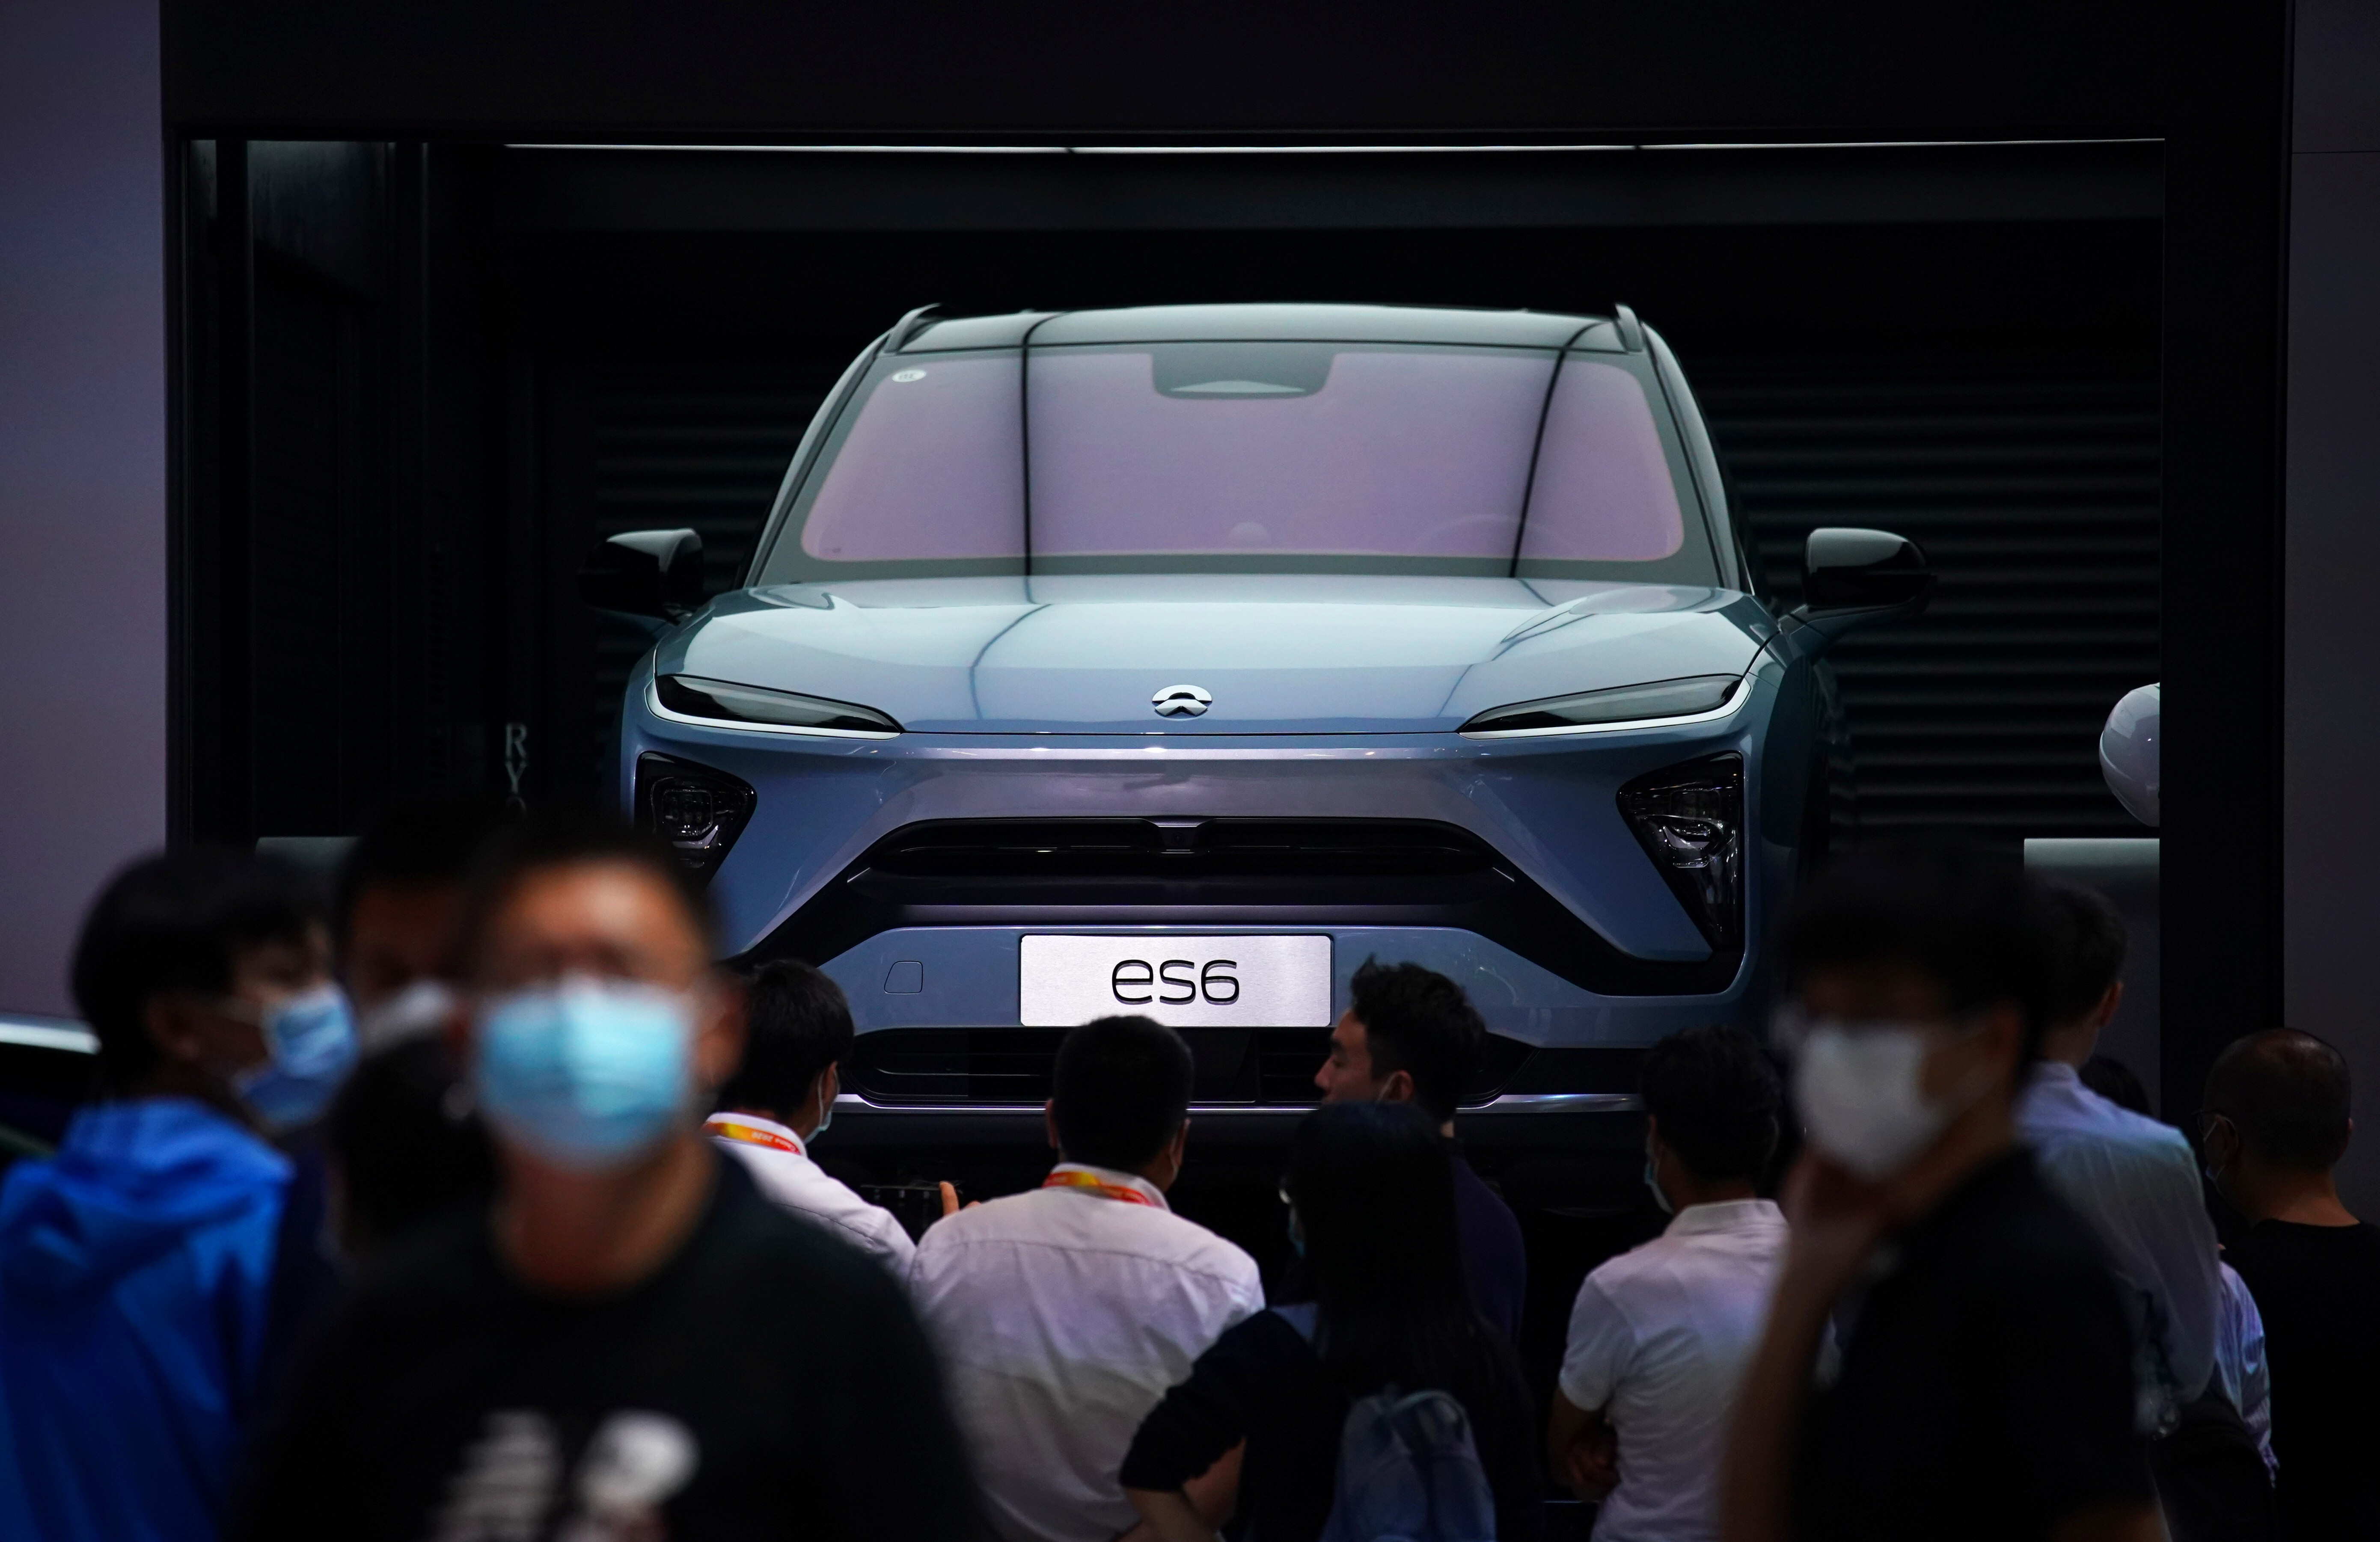 Chinese Electric Car Bellwether Marque Nio Narrows Gap With Tesla In Sign Domestic Rivals Are Gaining Ground On Us Giant South China Morning Post